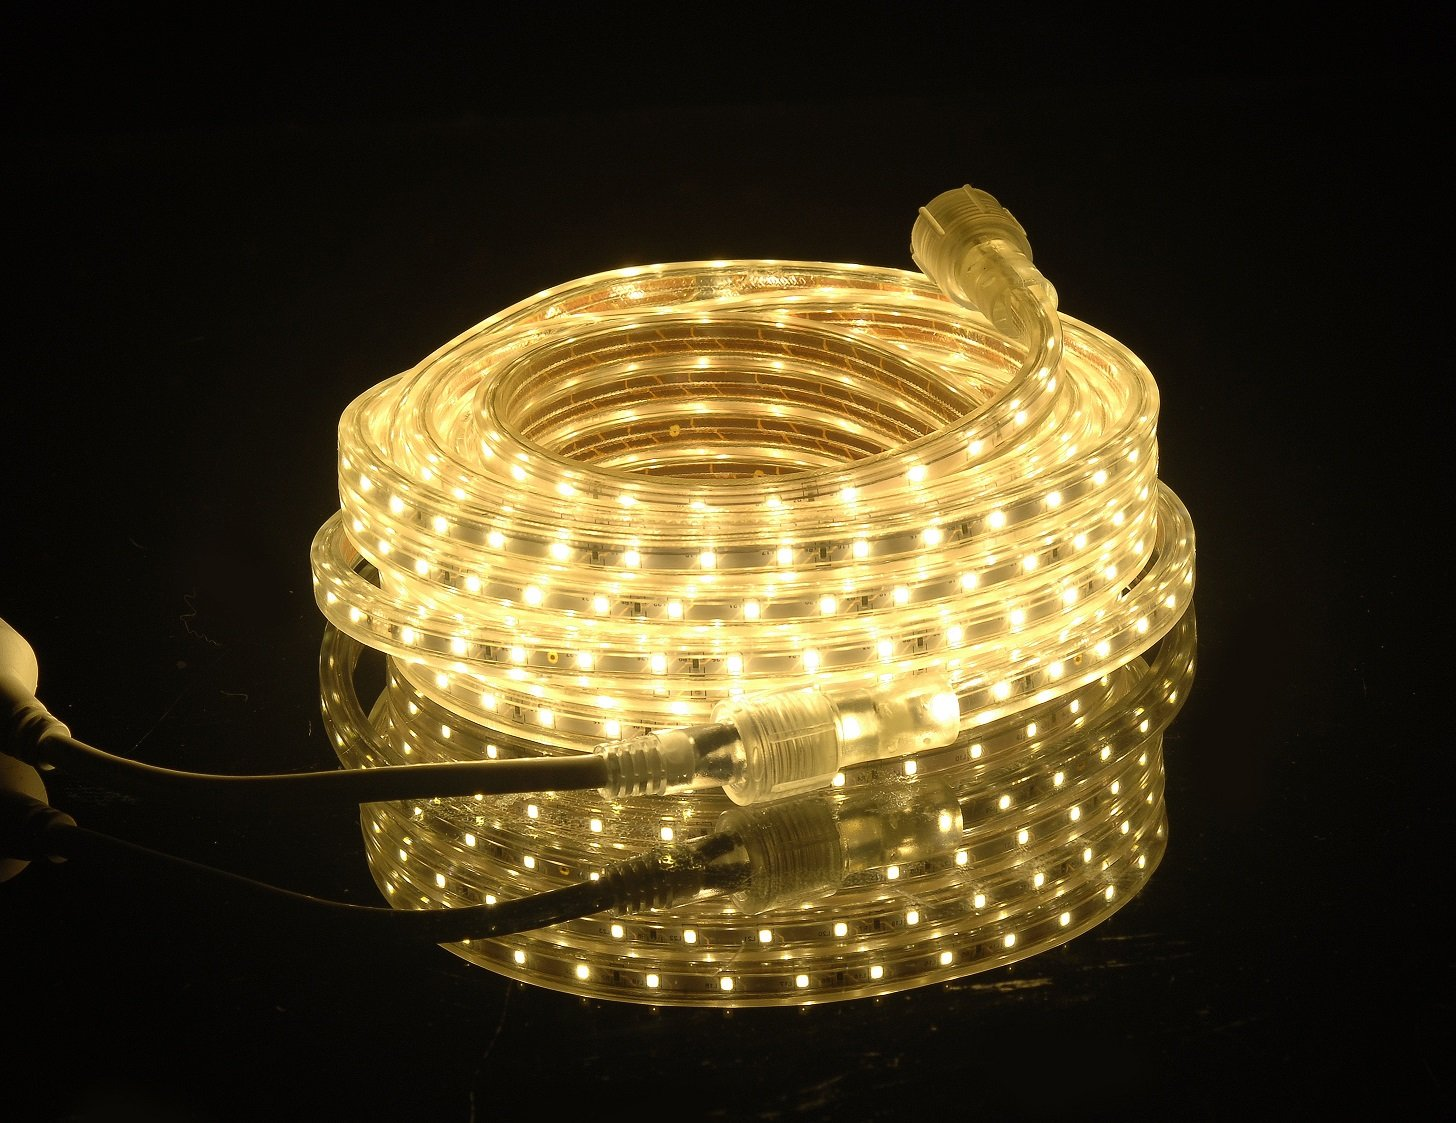 CBconcept UL Listed, 6.6 Feet, 720 Lumen, 3000K Warm White, Dimmable, 110-120V AC Flexible Flat LED Strip Rope Light, 120 Units 3528 SMD LEDs, Indoor/Outdoor Use, Accessories Included, [Ready to use] by CBconcept (Image #2)